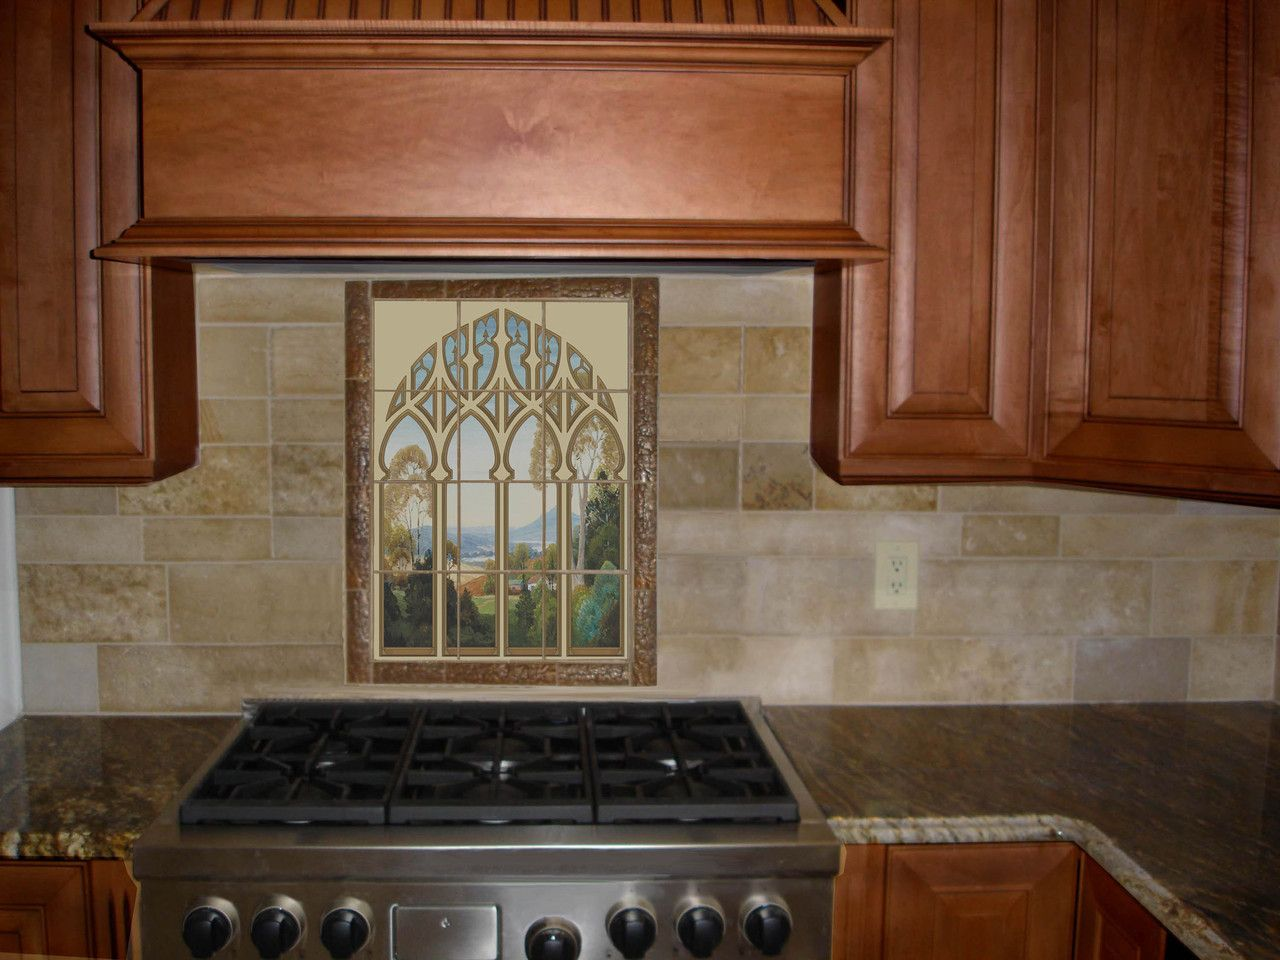 arched window art tile mural | tile murals, tile design and window